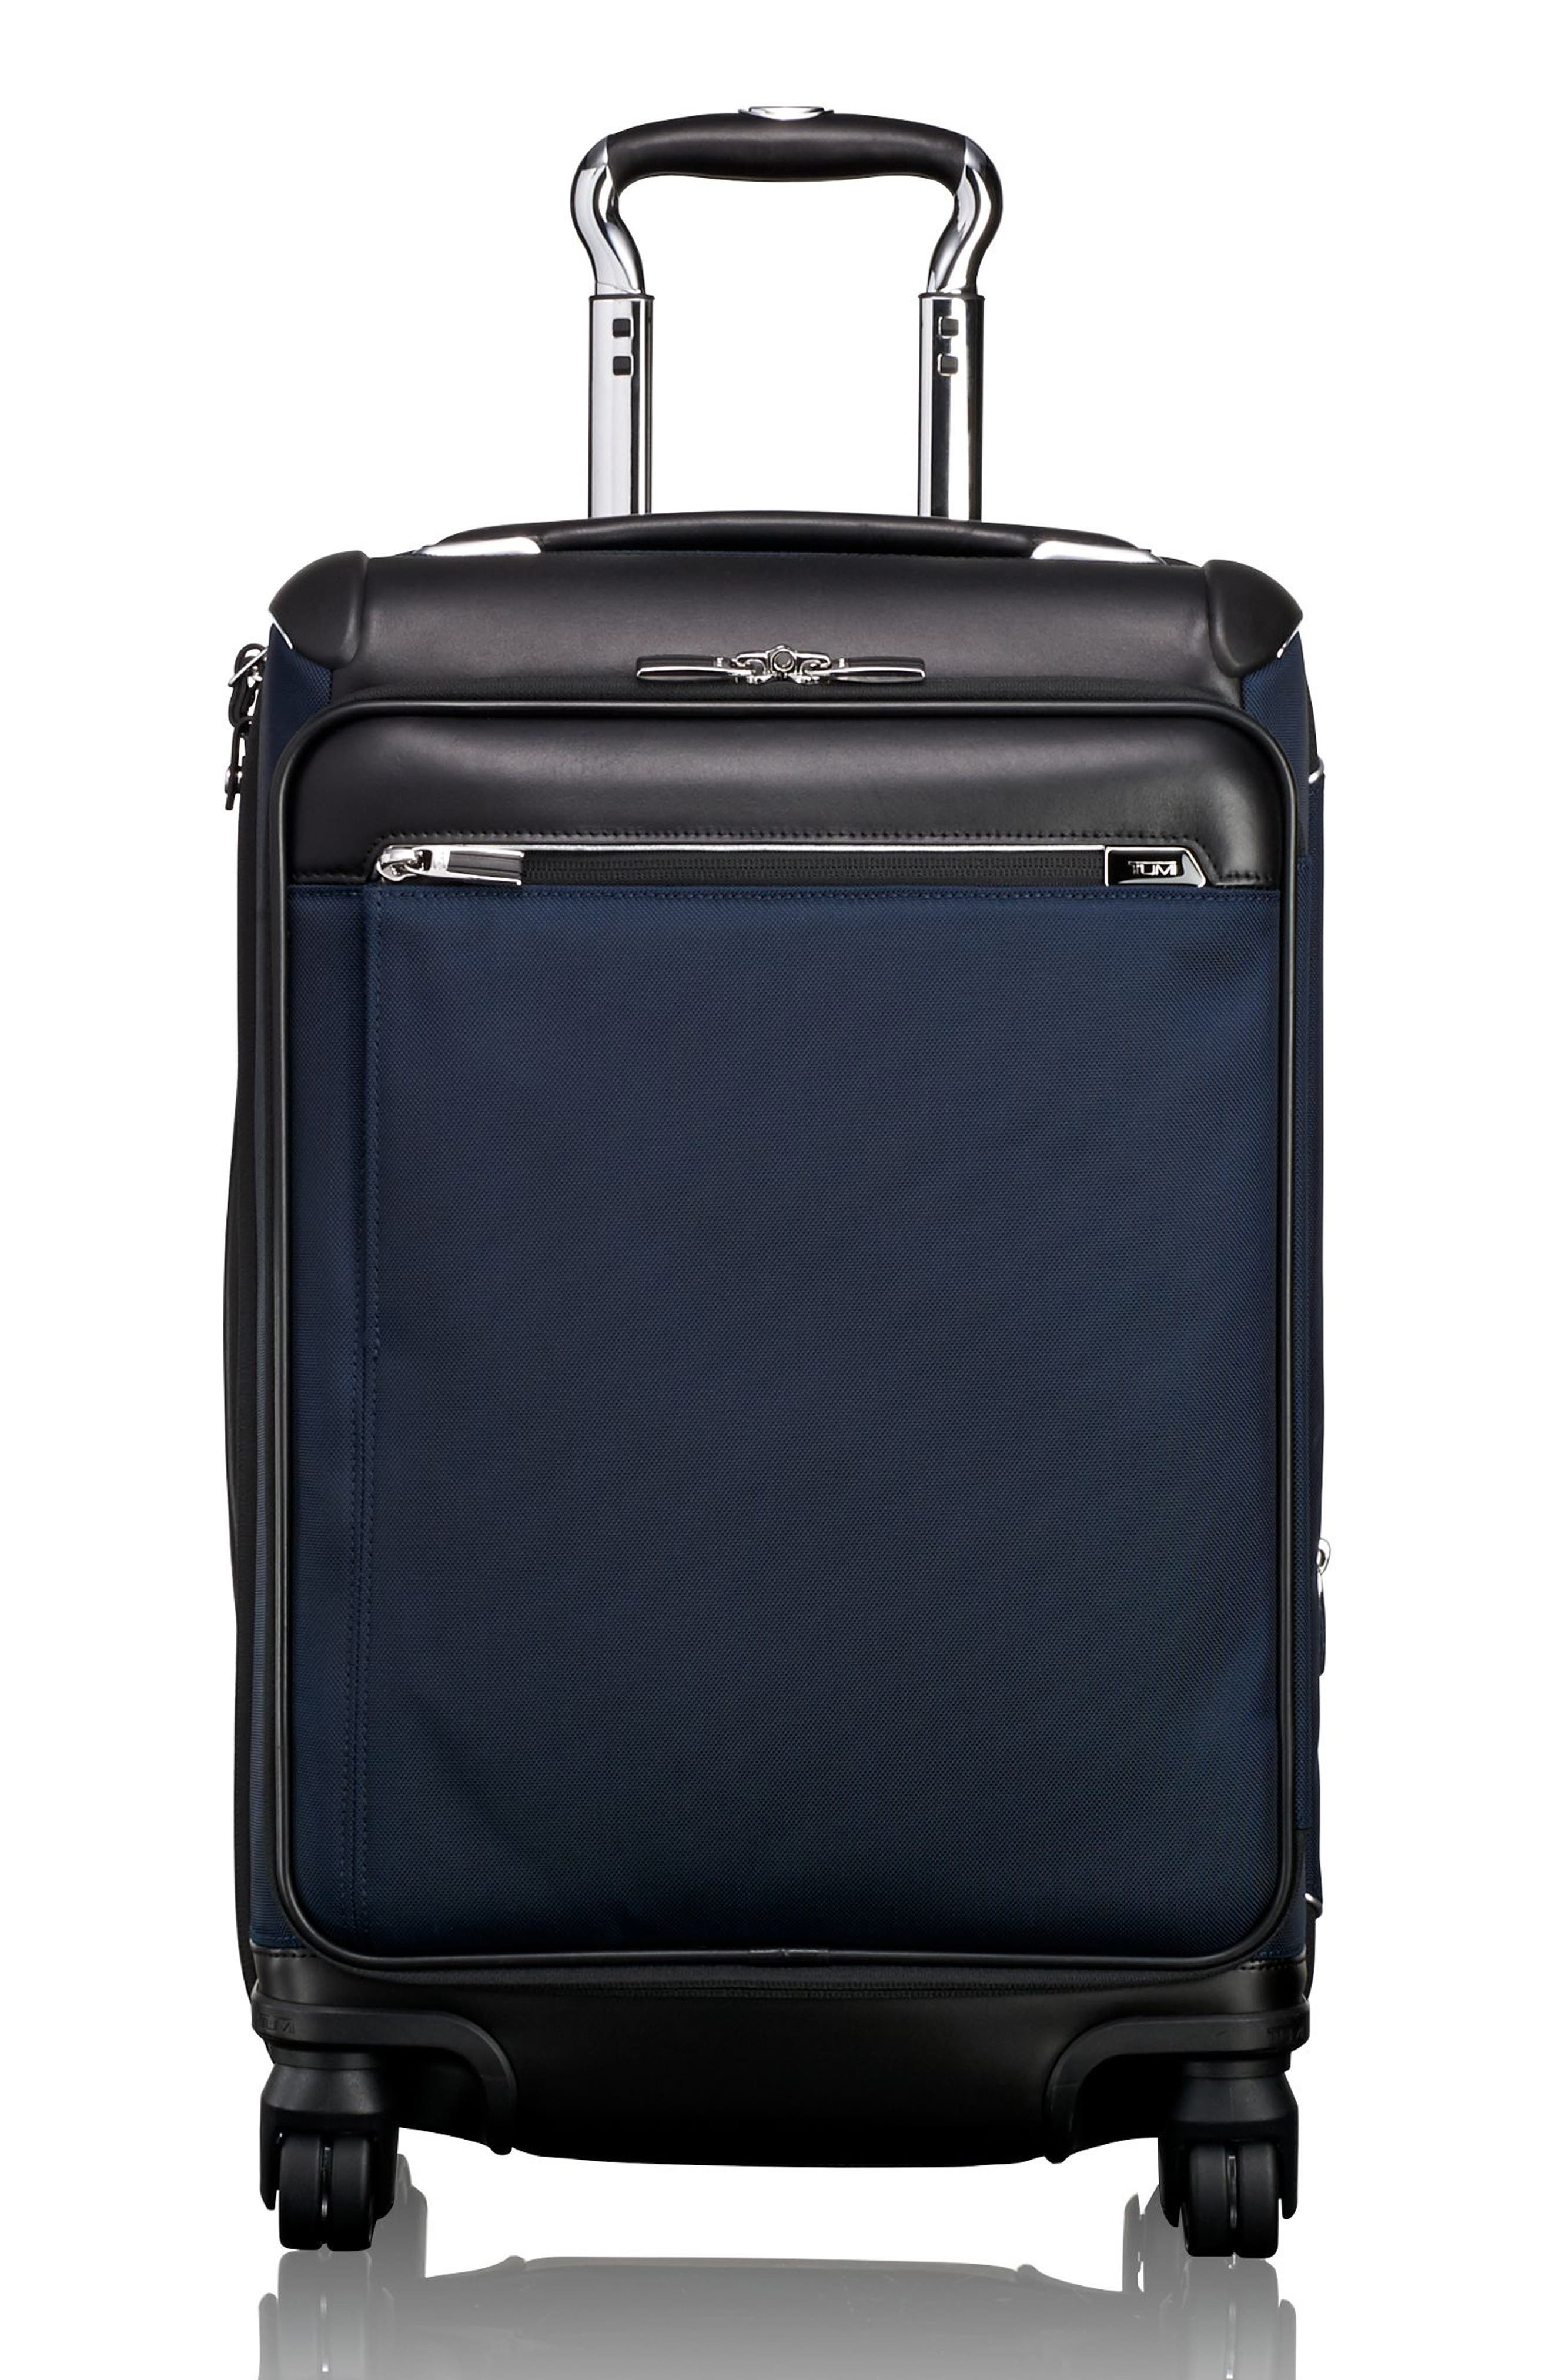 Tumi Gatwick 22 Inch International Expandable Carry-On